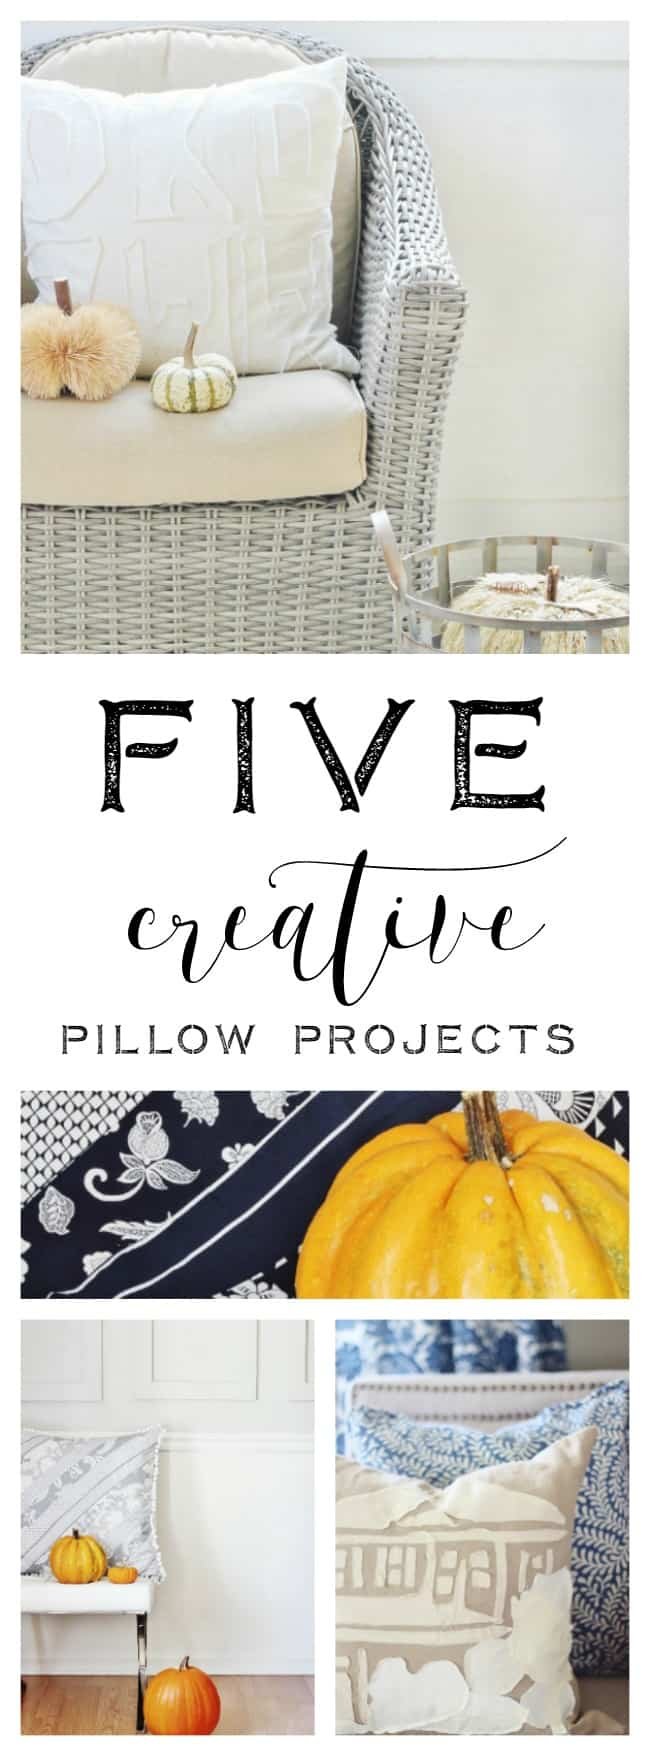 five-creative-pillow-projects